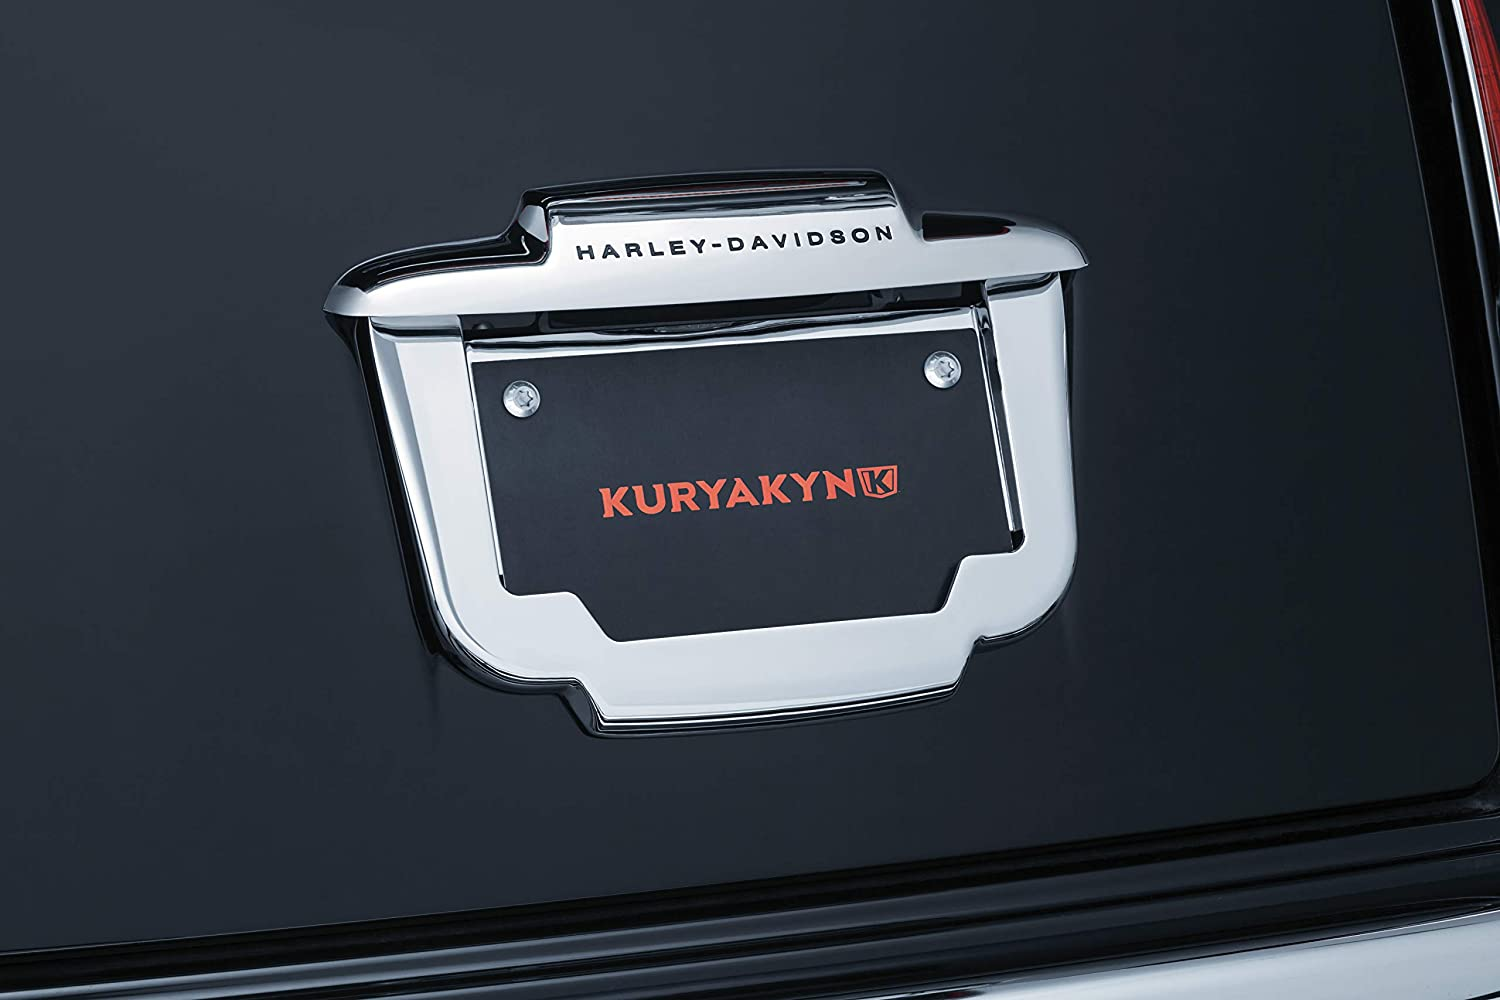 Kuryakyn 5148 Chrome License Plate Frame for Harley 2011-2018 FLHTCUTG Tri Ultra Classics and 2010-2011 FLHXXX Street Glide Trikes